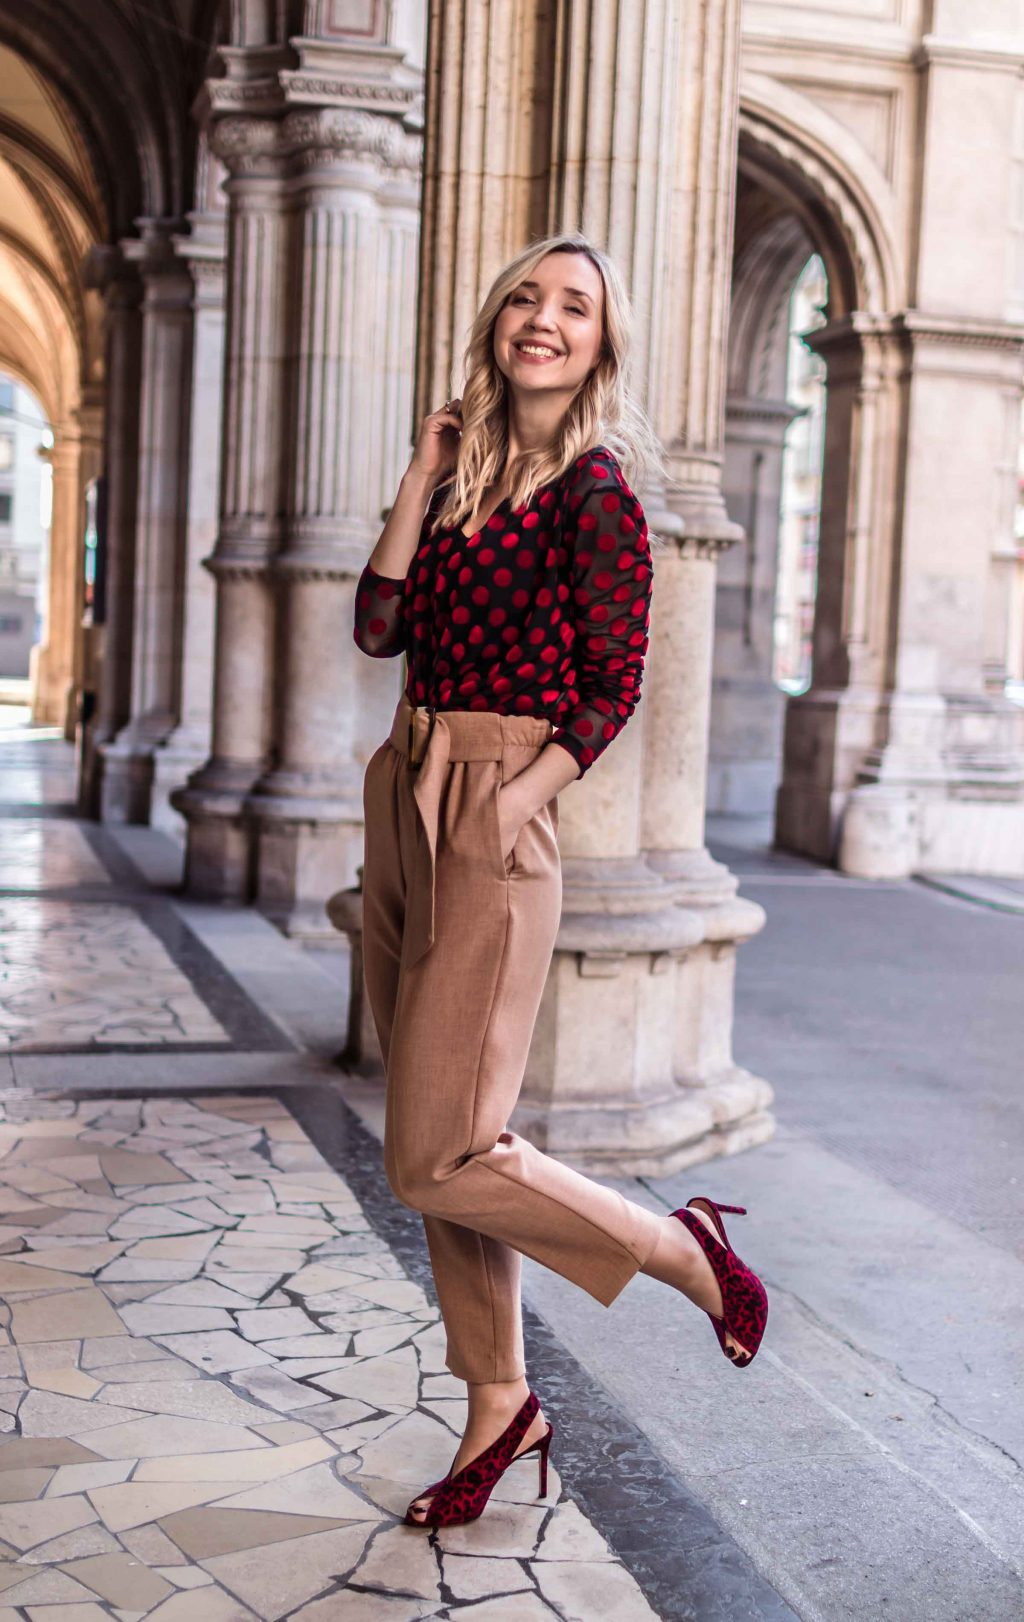 How to style slingbacks?